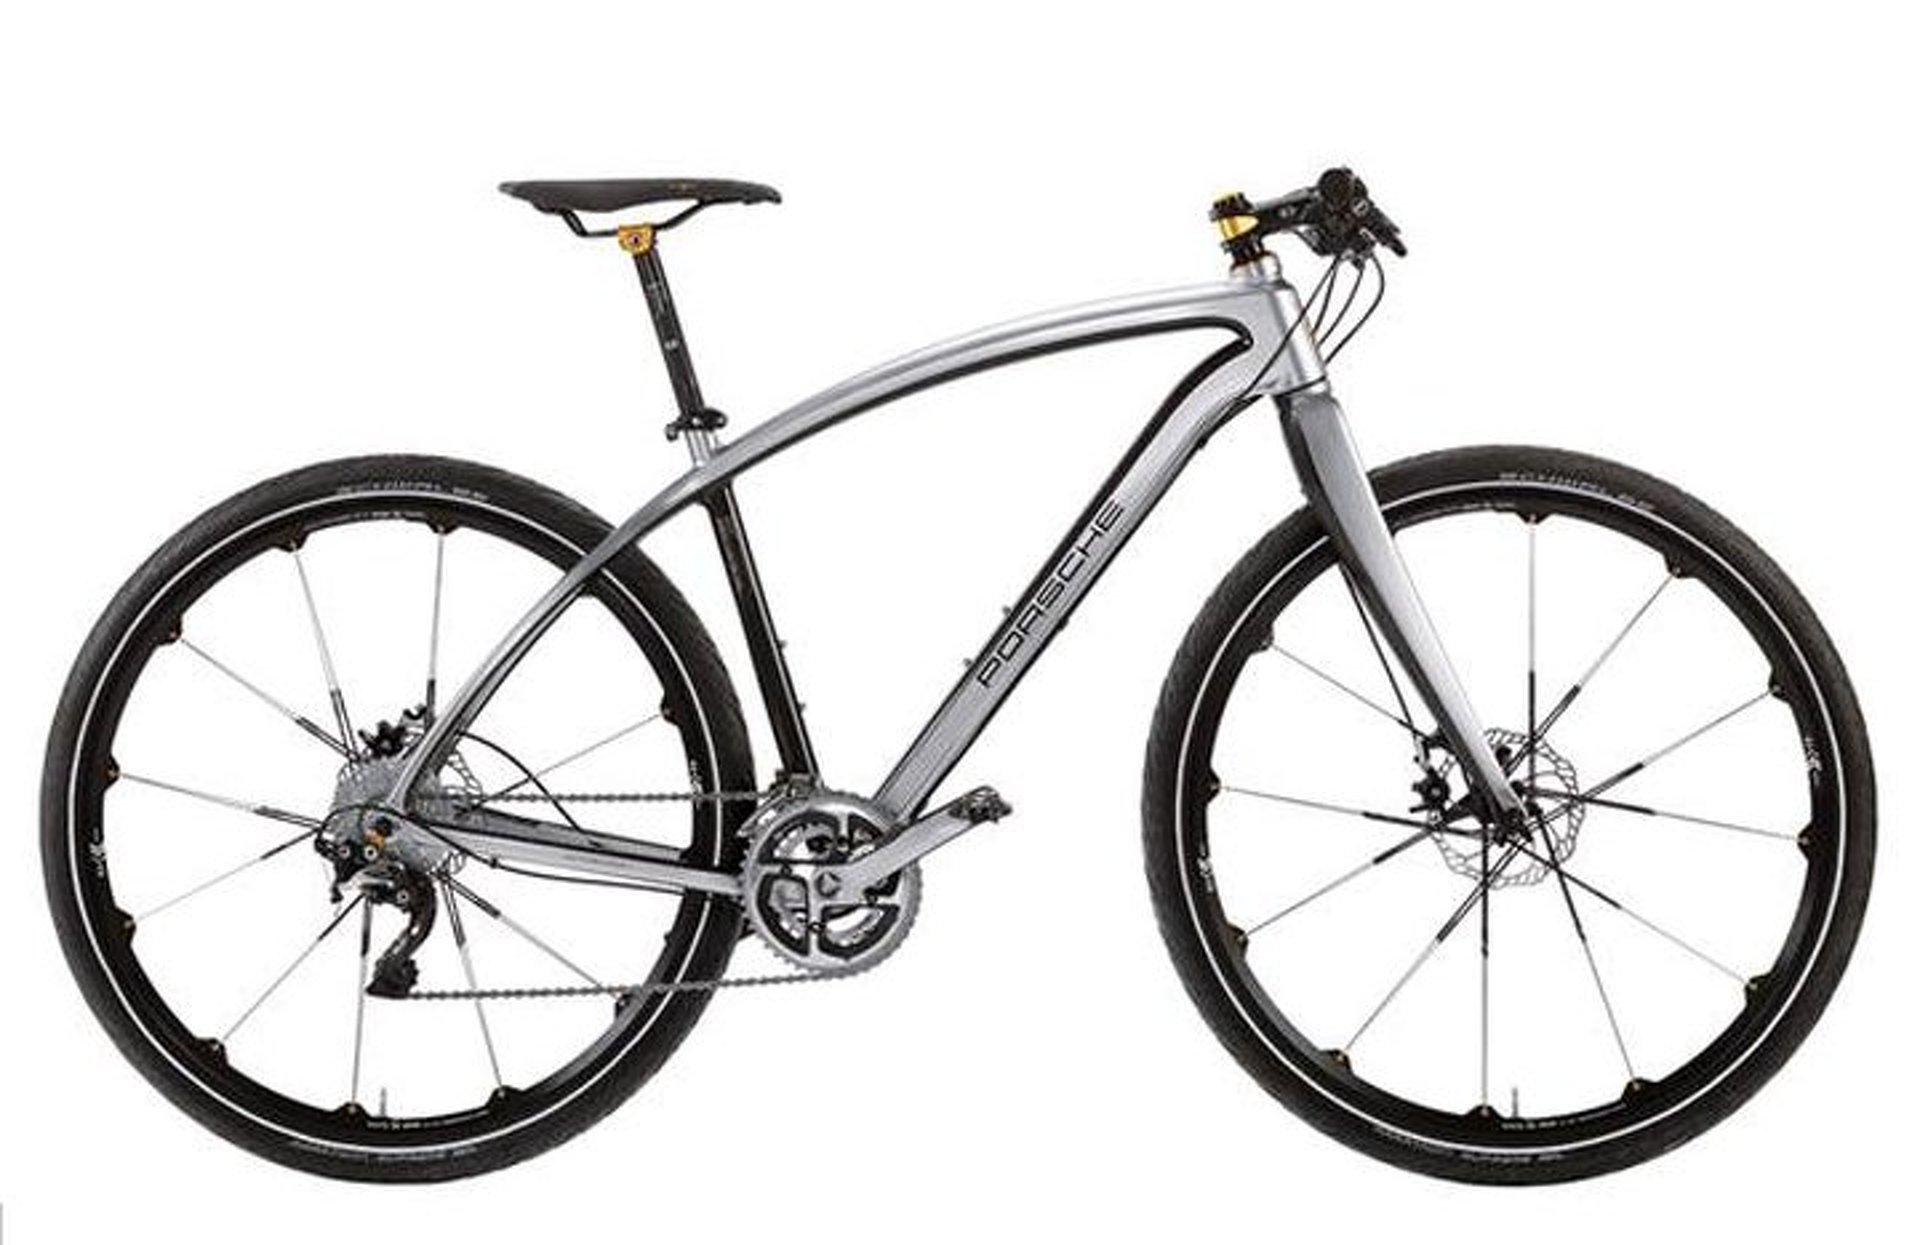 7 Bicycles From Car Brands To Pedal Off With Your